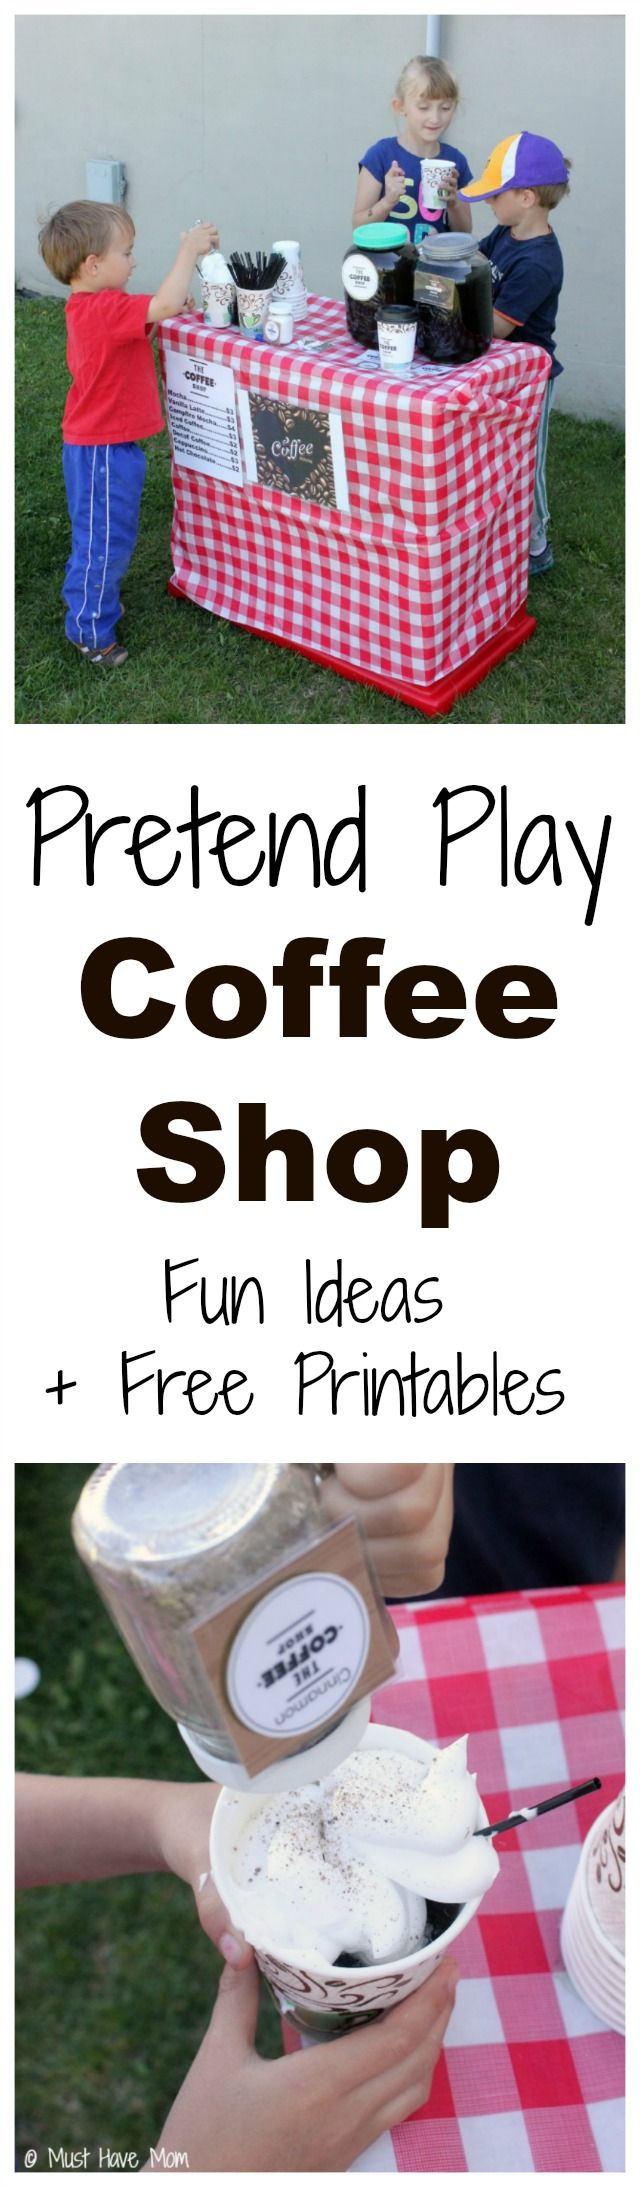 Found on the #HomeMattersParty this week: Pretend Play Coffee Shop Idea with tons of fun ideas for outdoor coffee shop setup and free printables too! Love this kids activities idea that they can play outside!